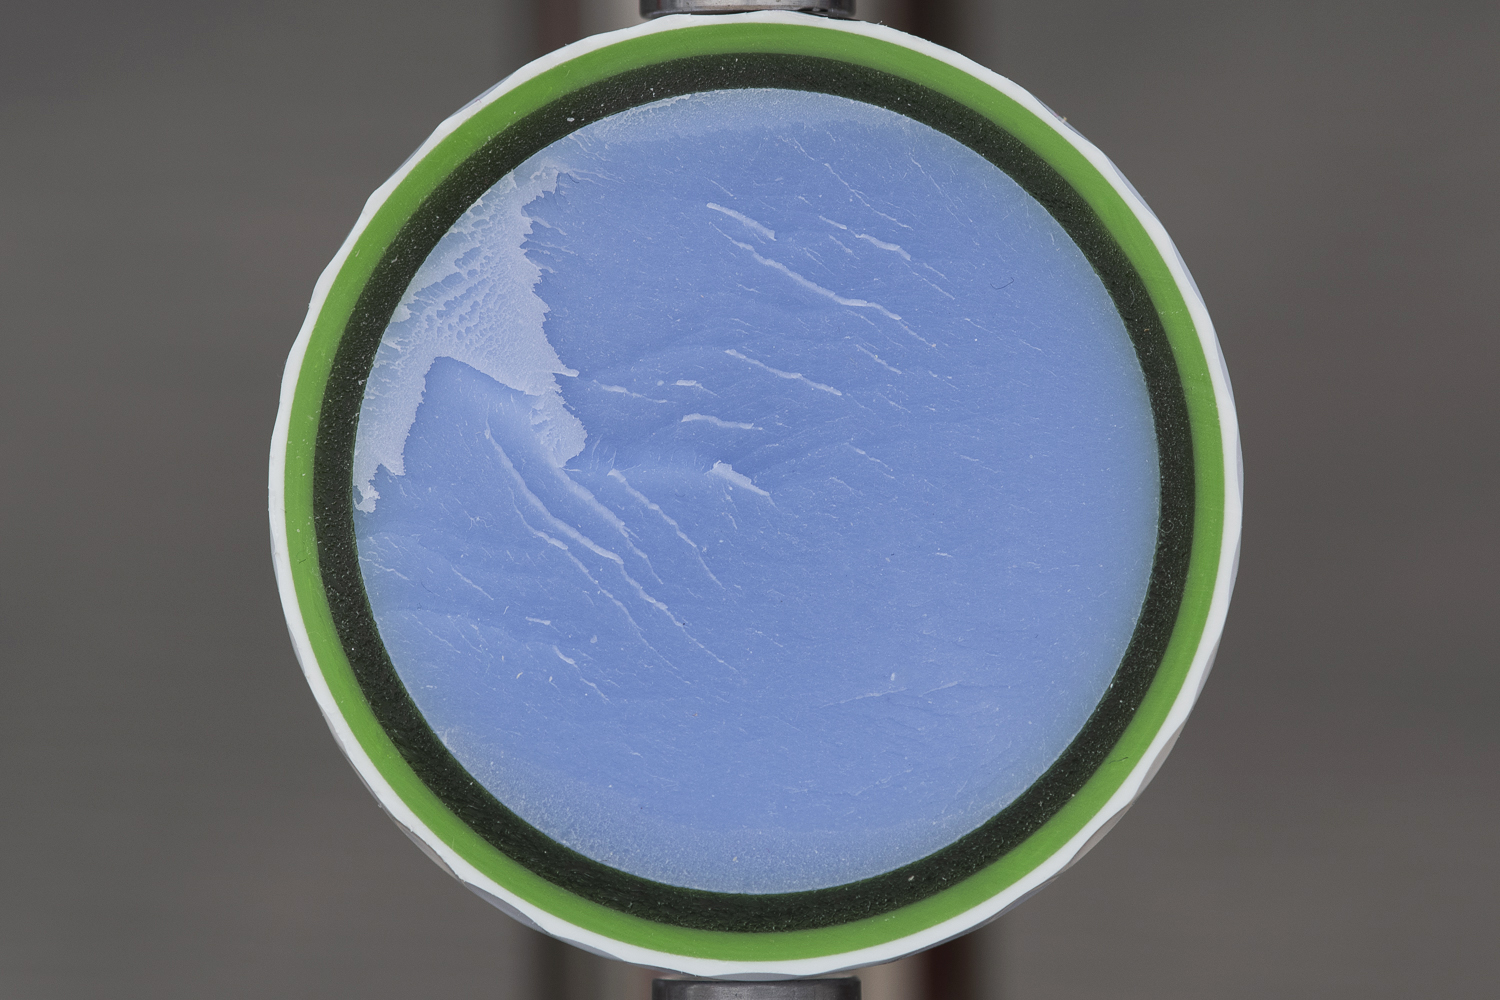 An image of the core of the Wilson Staff Model R golf ball.